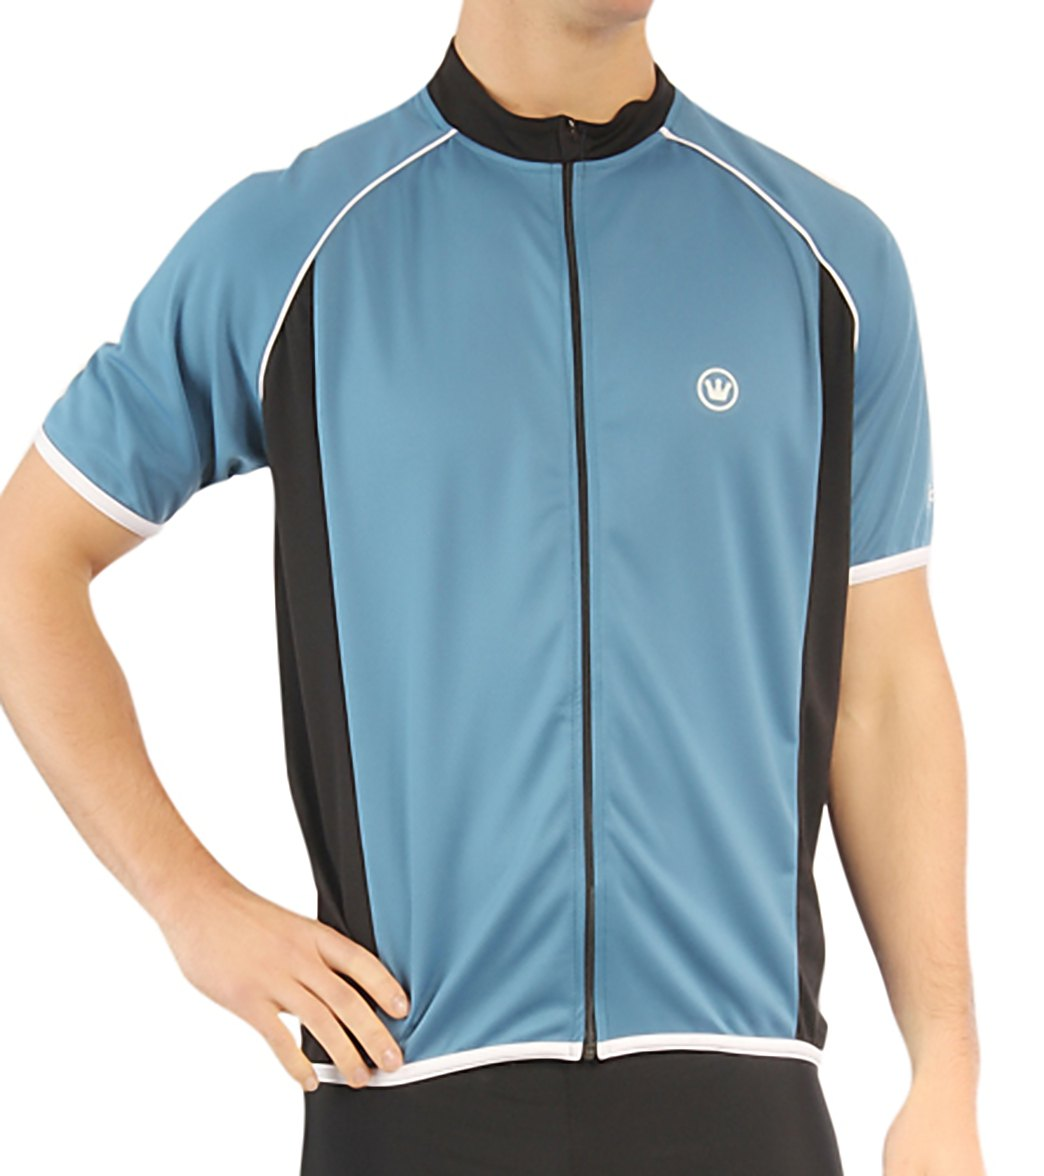 Canari Men s Endurance Cycling Jersey at SwimOutlet.com 3c7366519